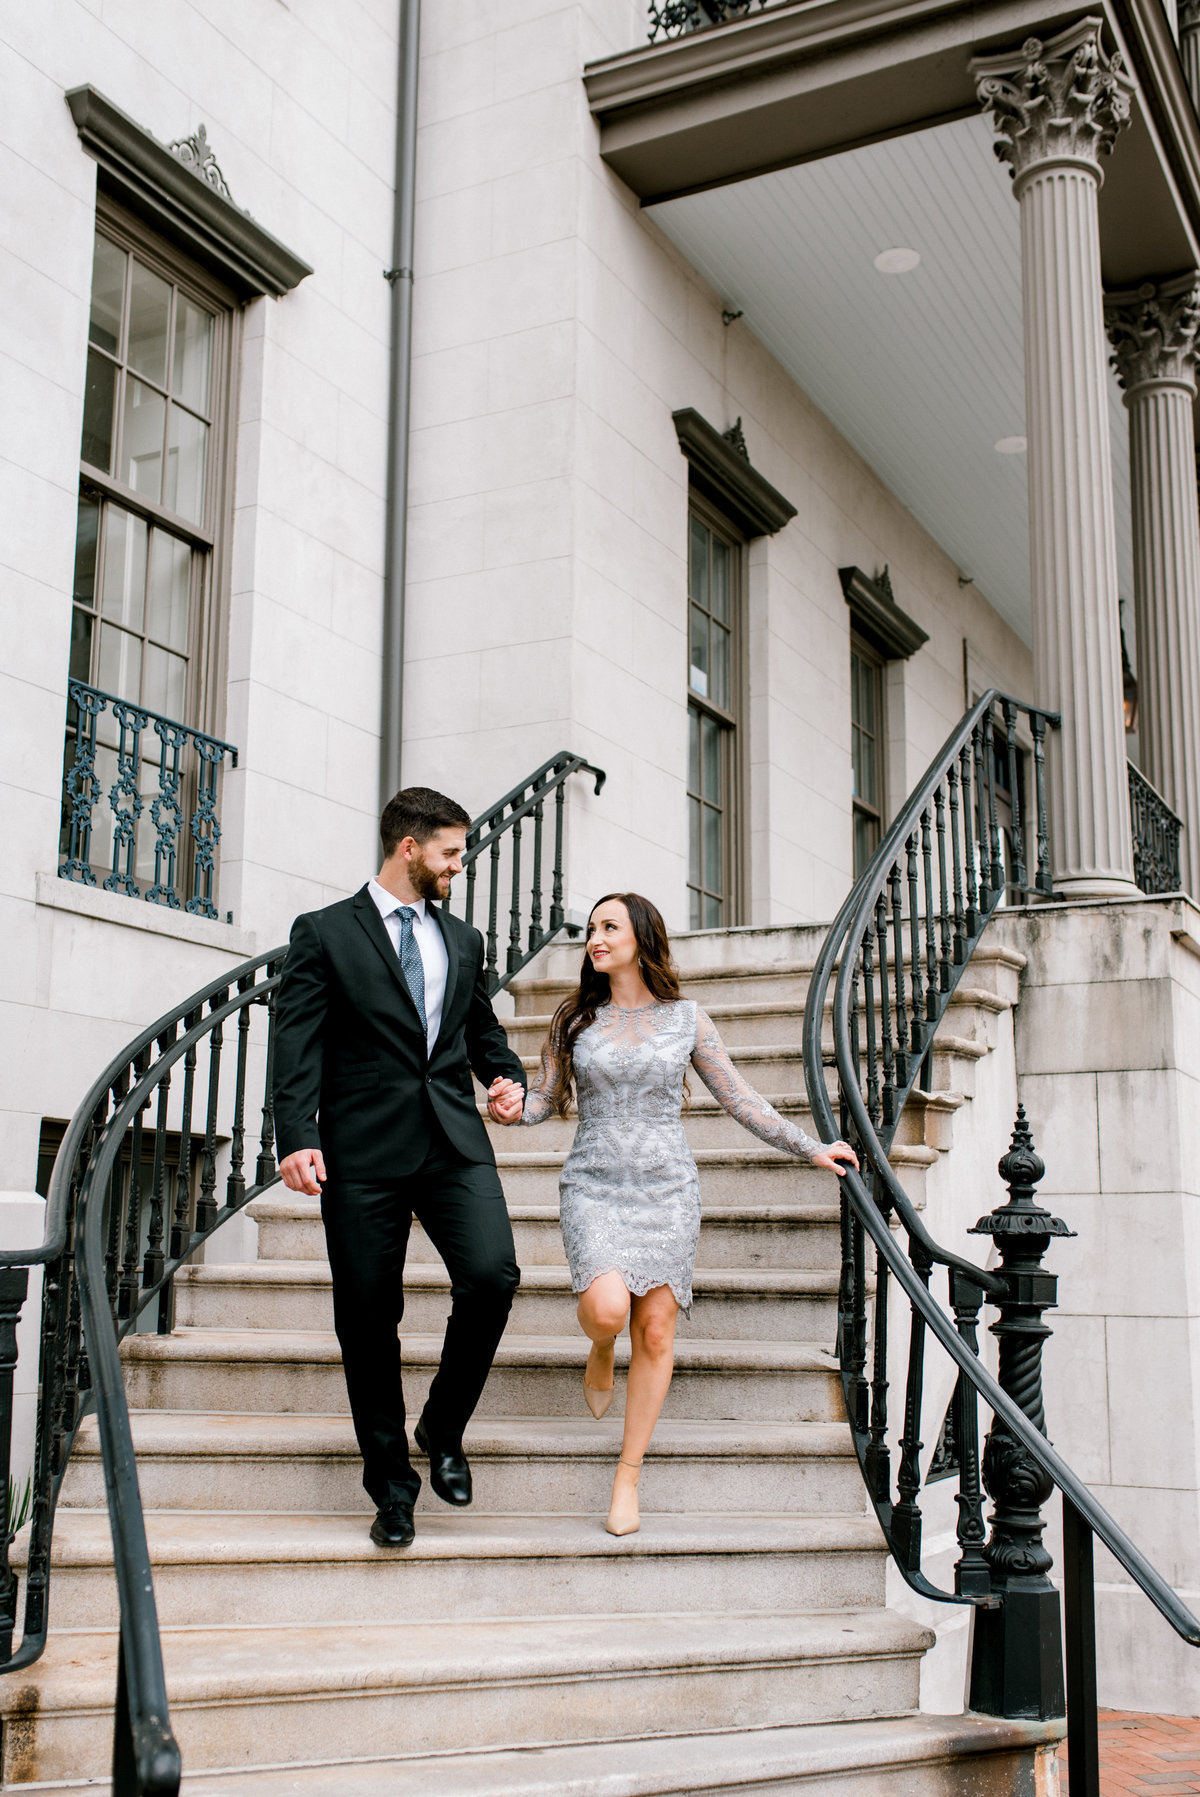 Couple walking down stairs during engagement session Savannah